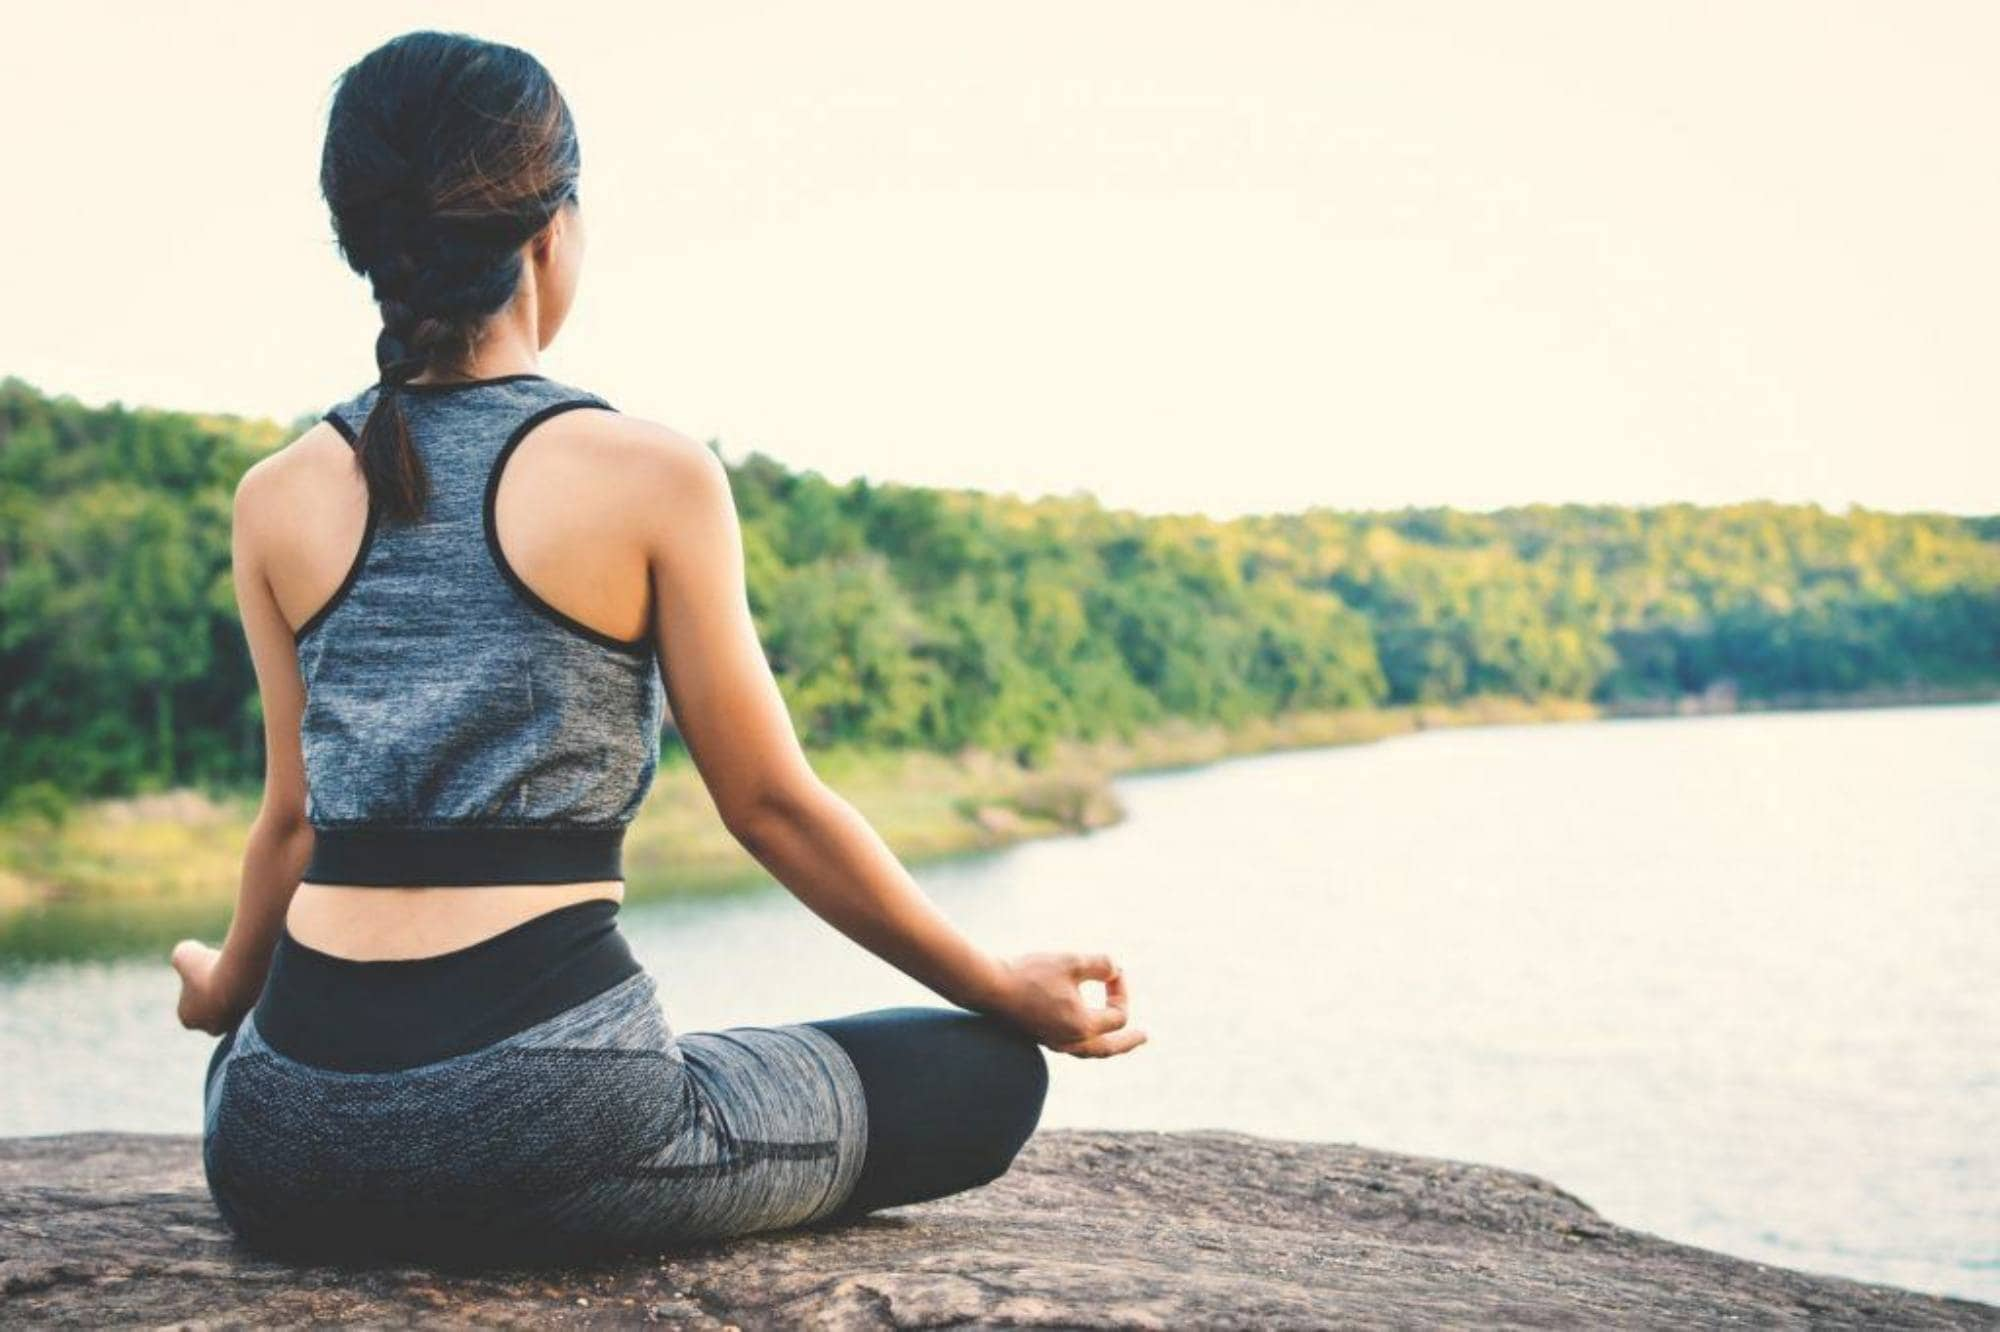 Natural dandruff remedies: a girl meditating by the beach